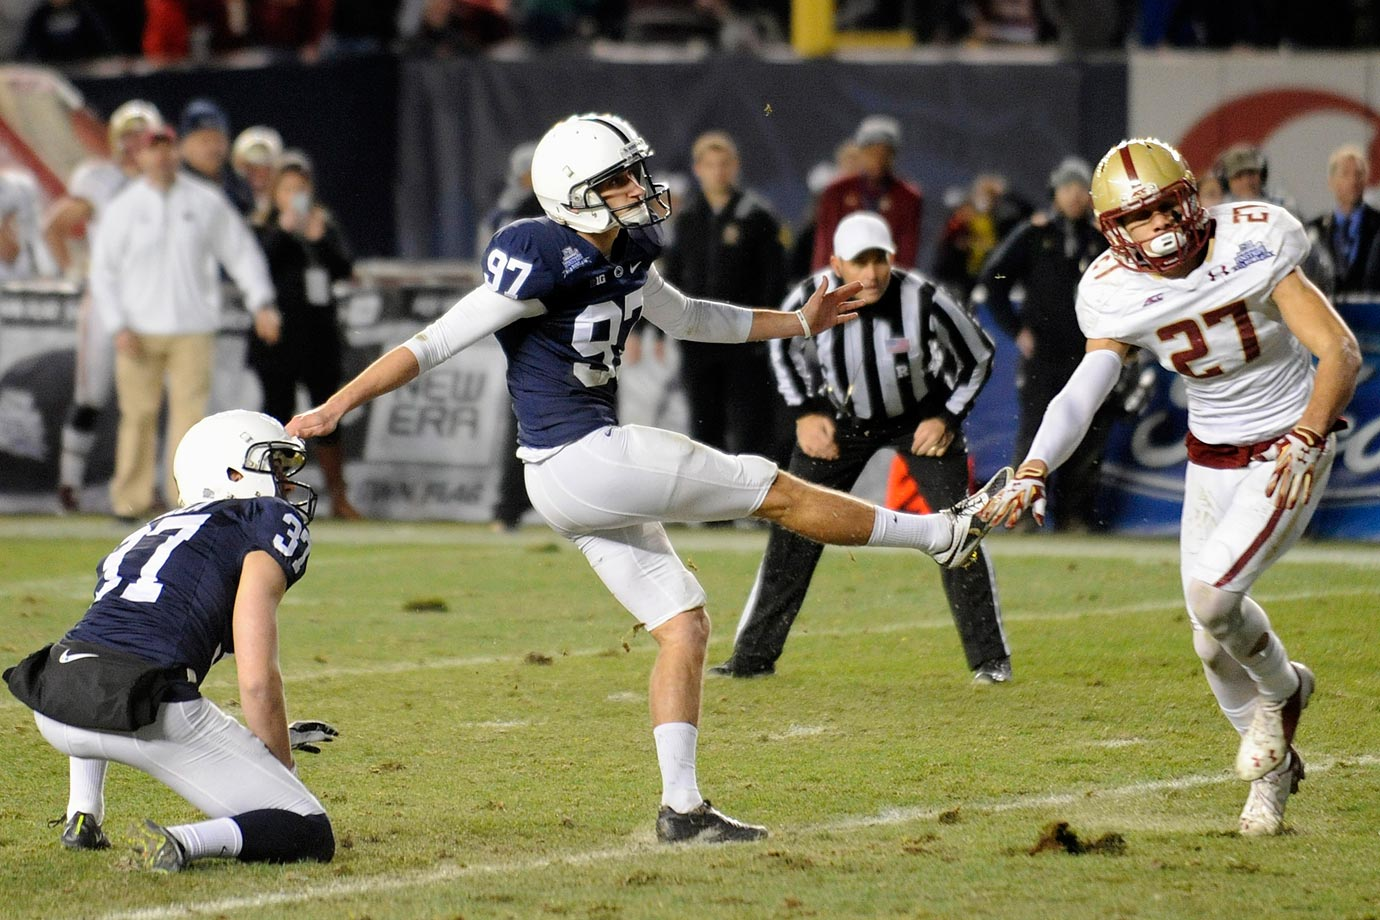 Ficken booted a 45-yarder to force OT and then clinched the Nittany Lions' win with an extra point.